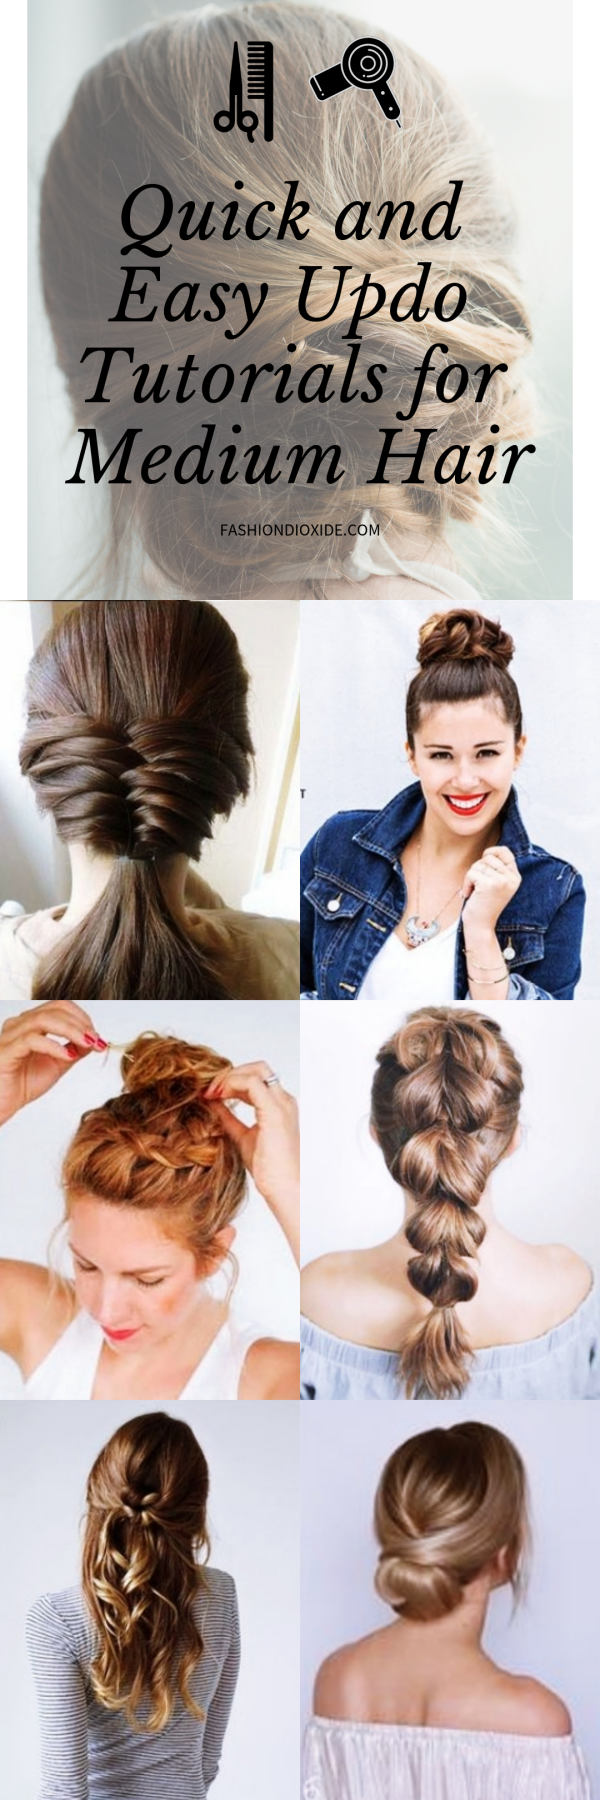 45 Quick and Easy Updo Tutorials for Medium Hair # ...